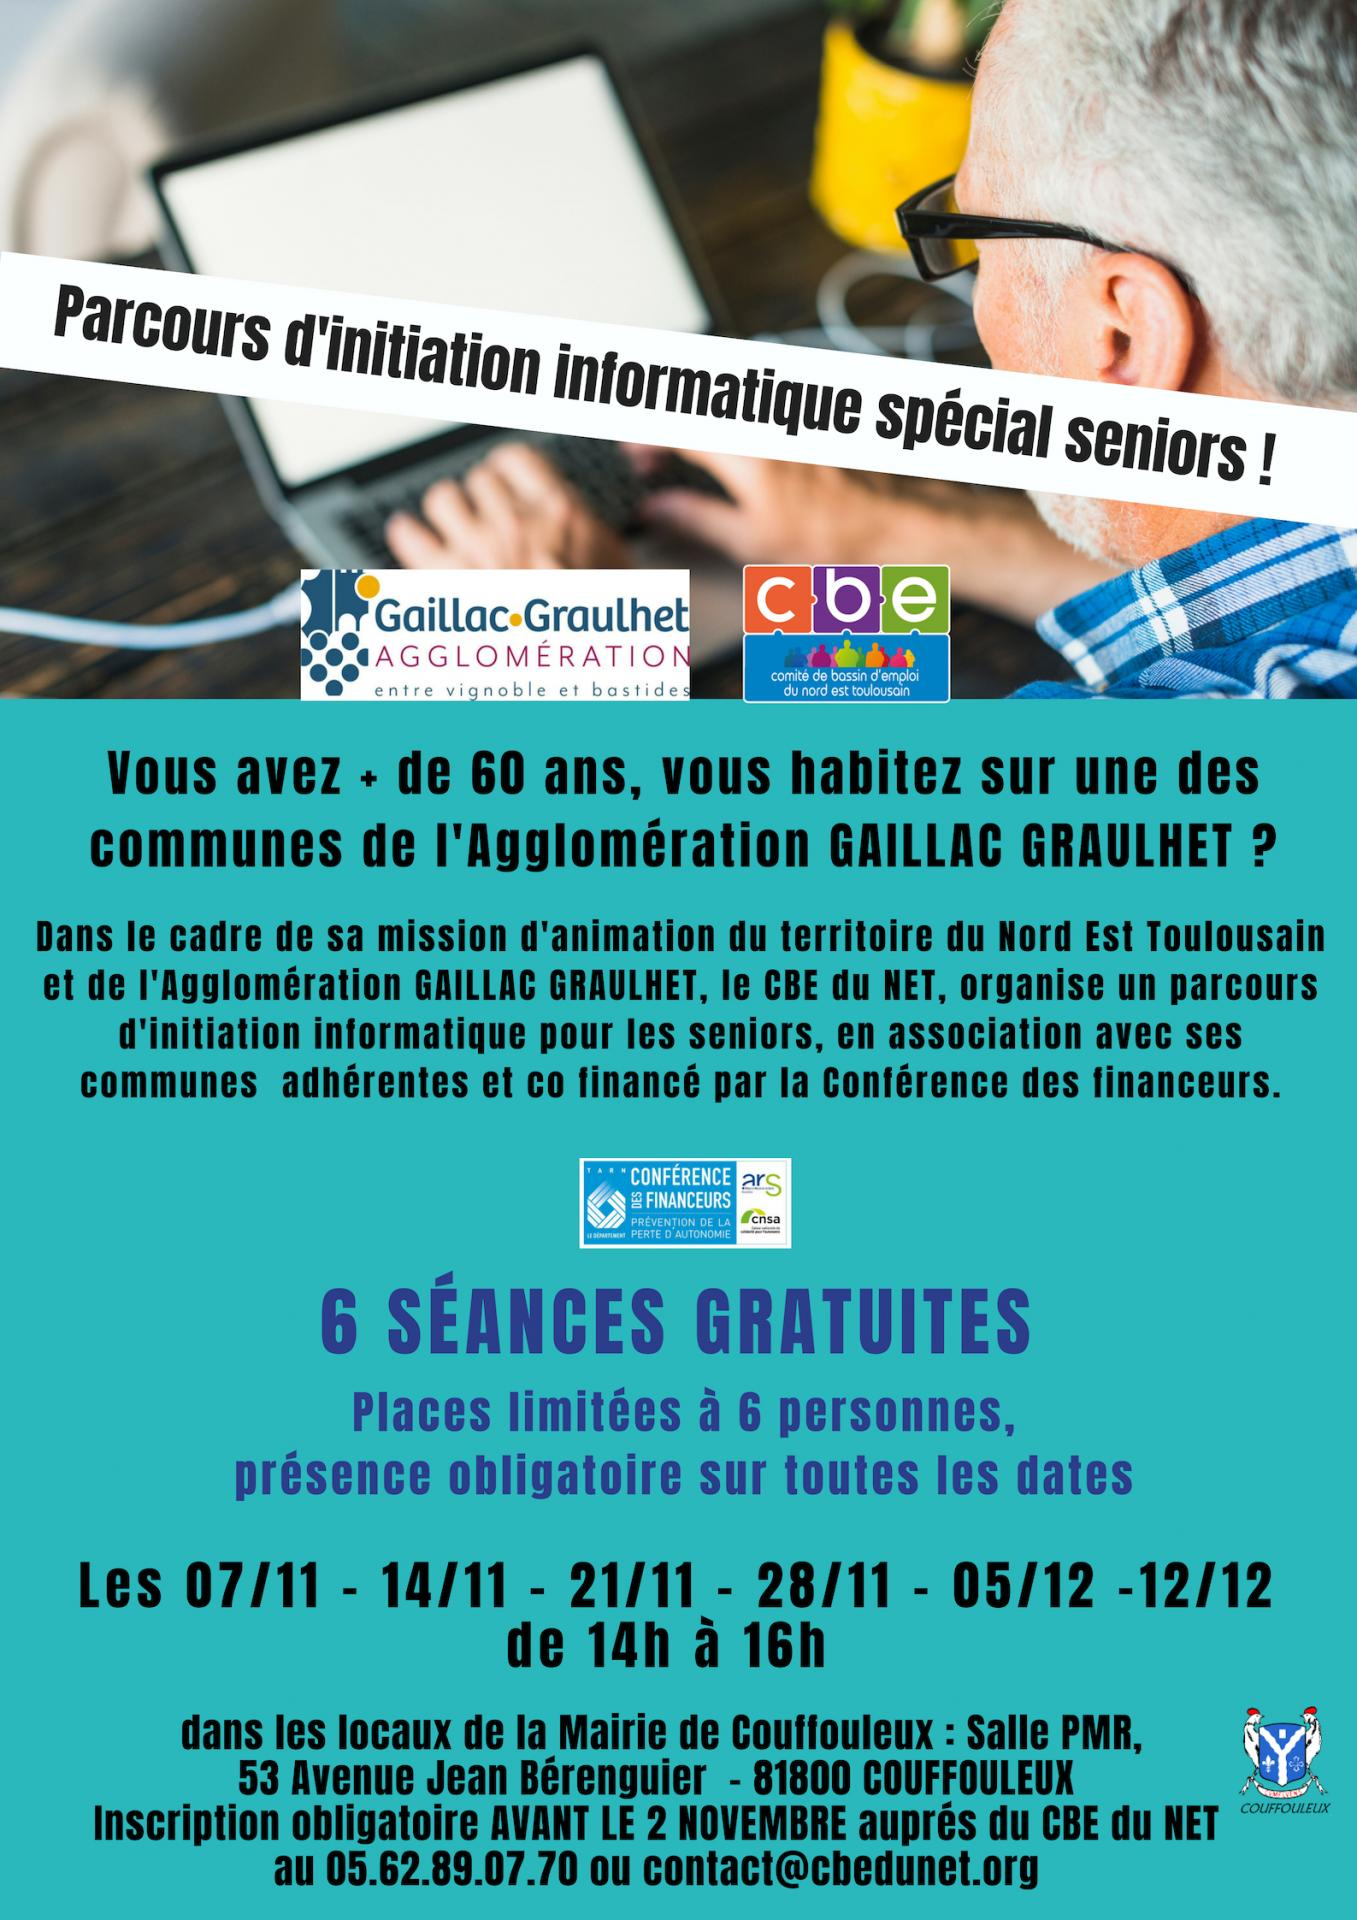 Initiation informatique seniors